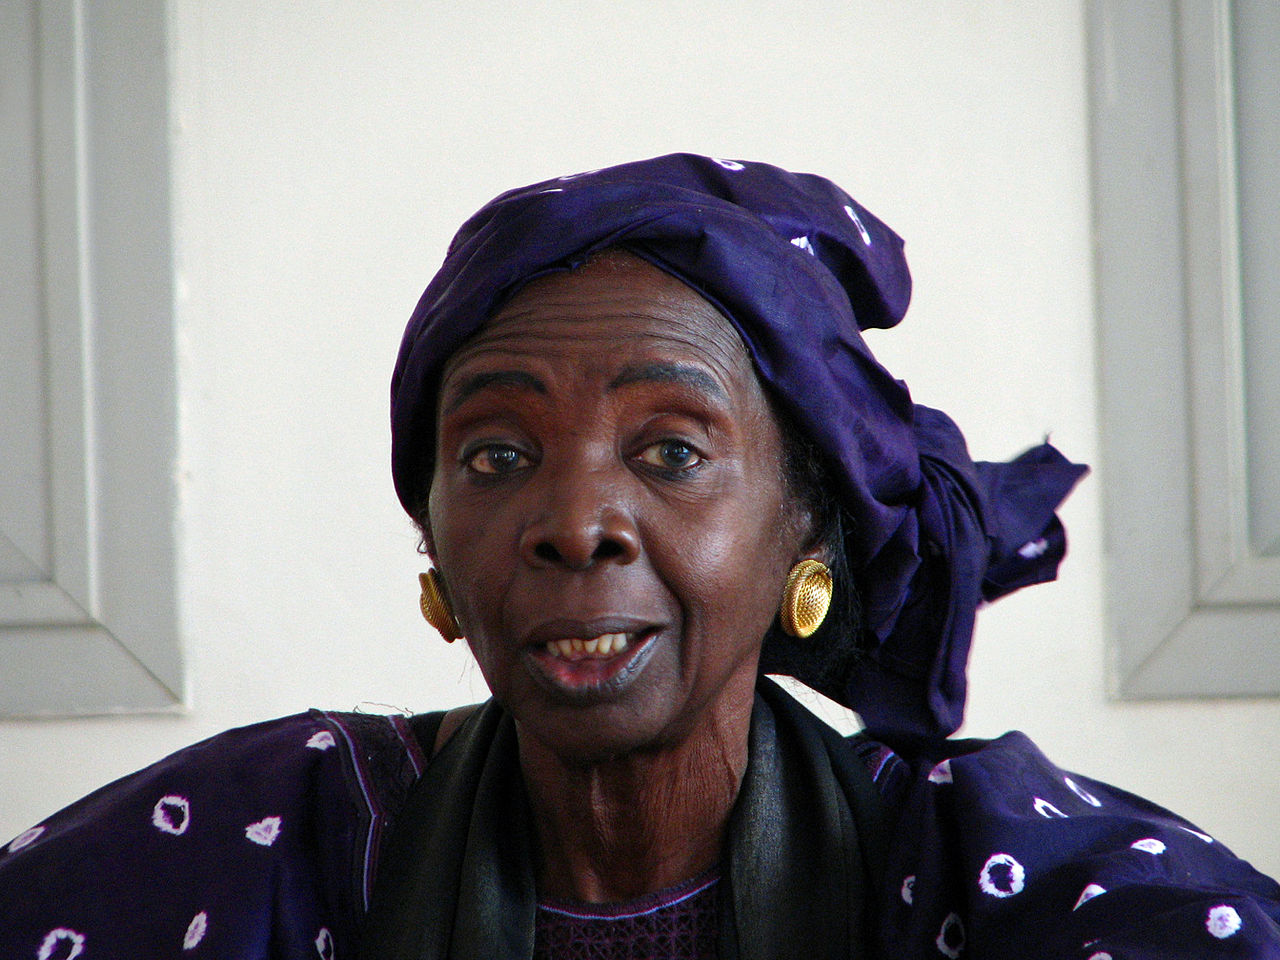 Aminata Sow Fall, commons.wikimedia.org